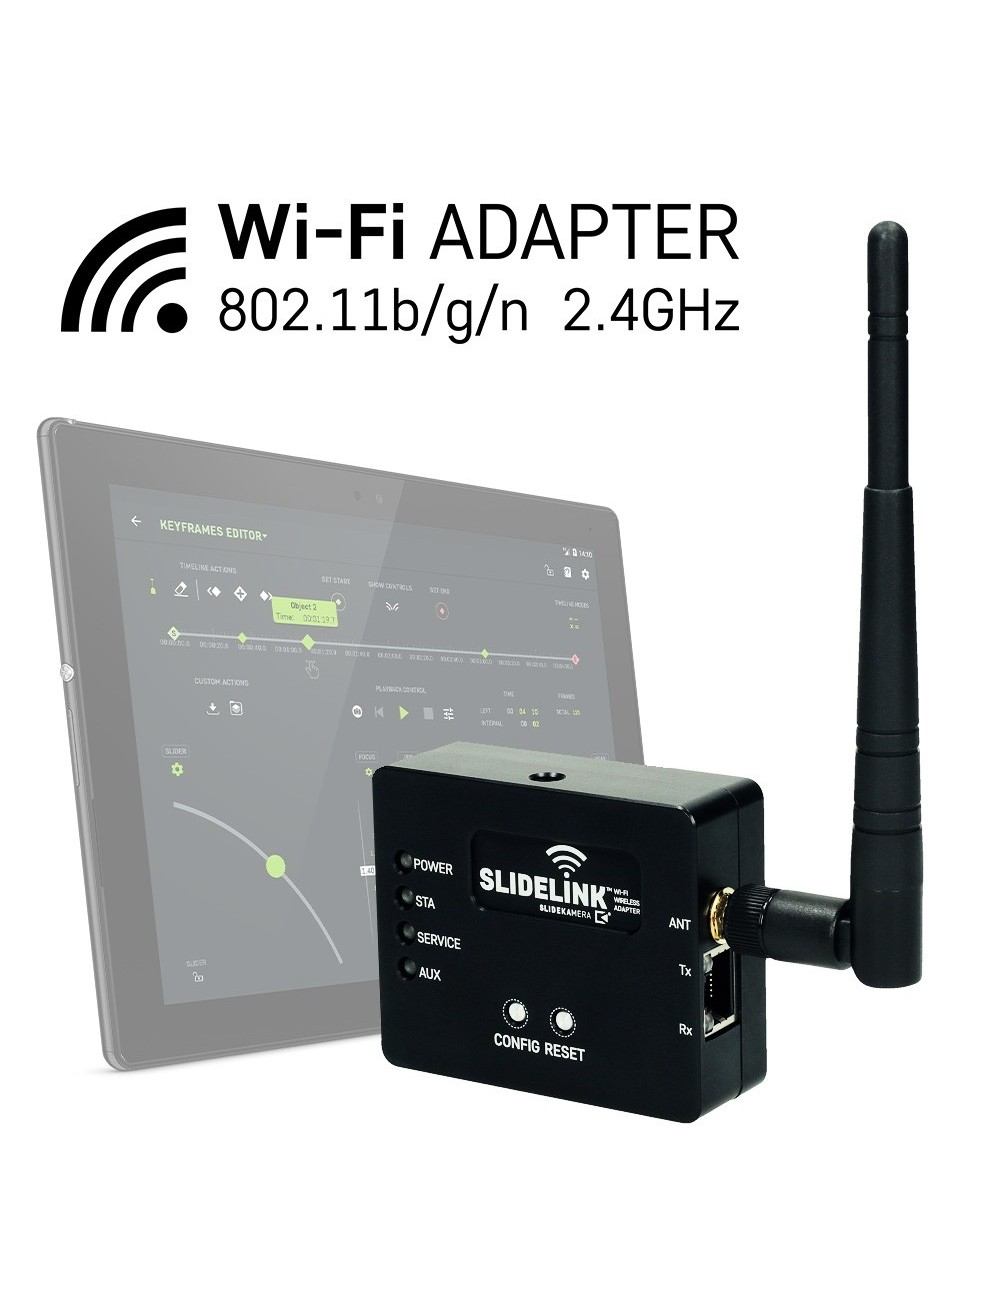 SLIDELINK wireless Wi-Fi adapter